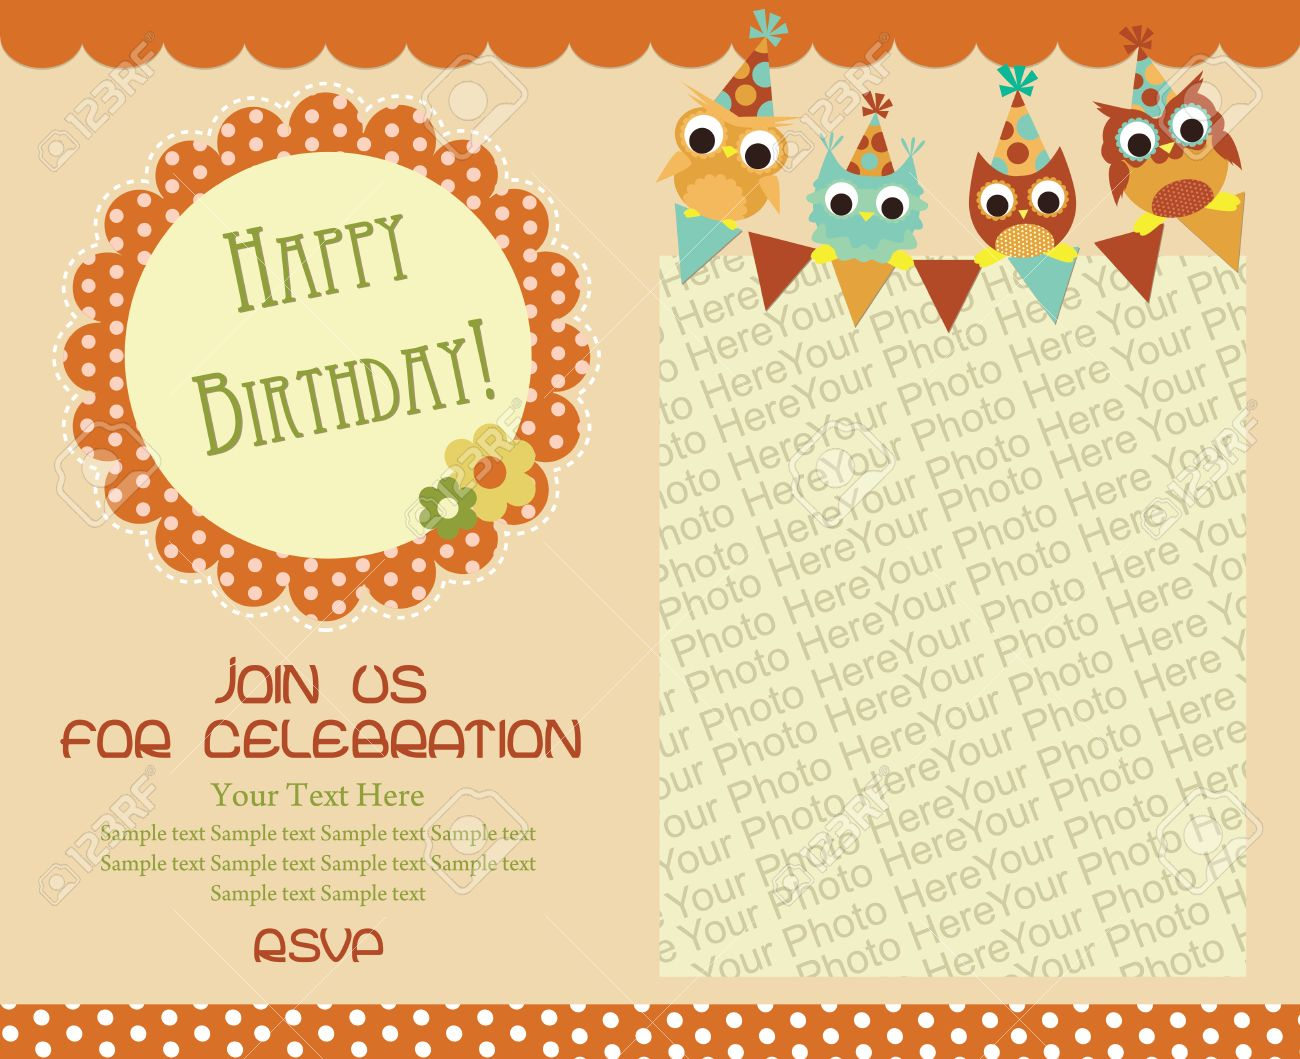 Happy Birthday Invitation Card Design. Vector Illustration Royalty ...